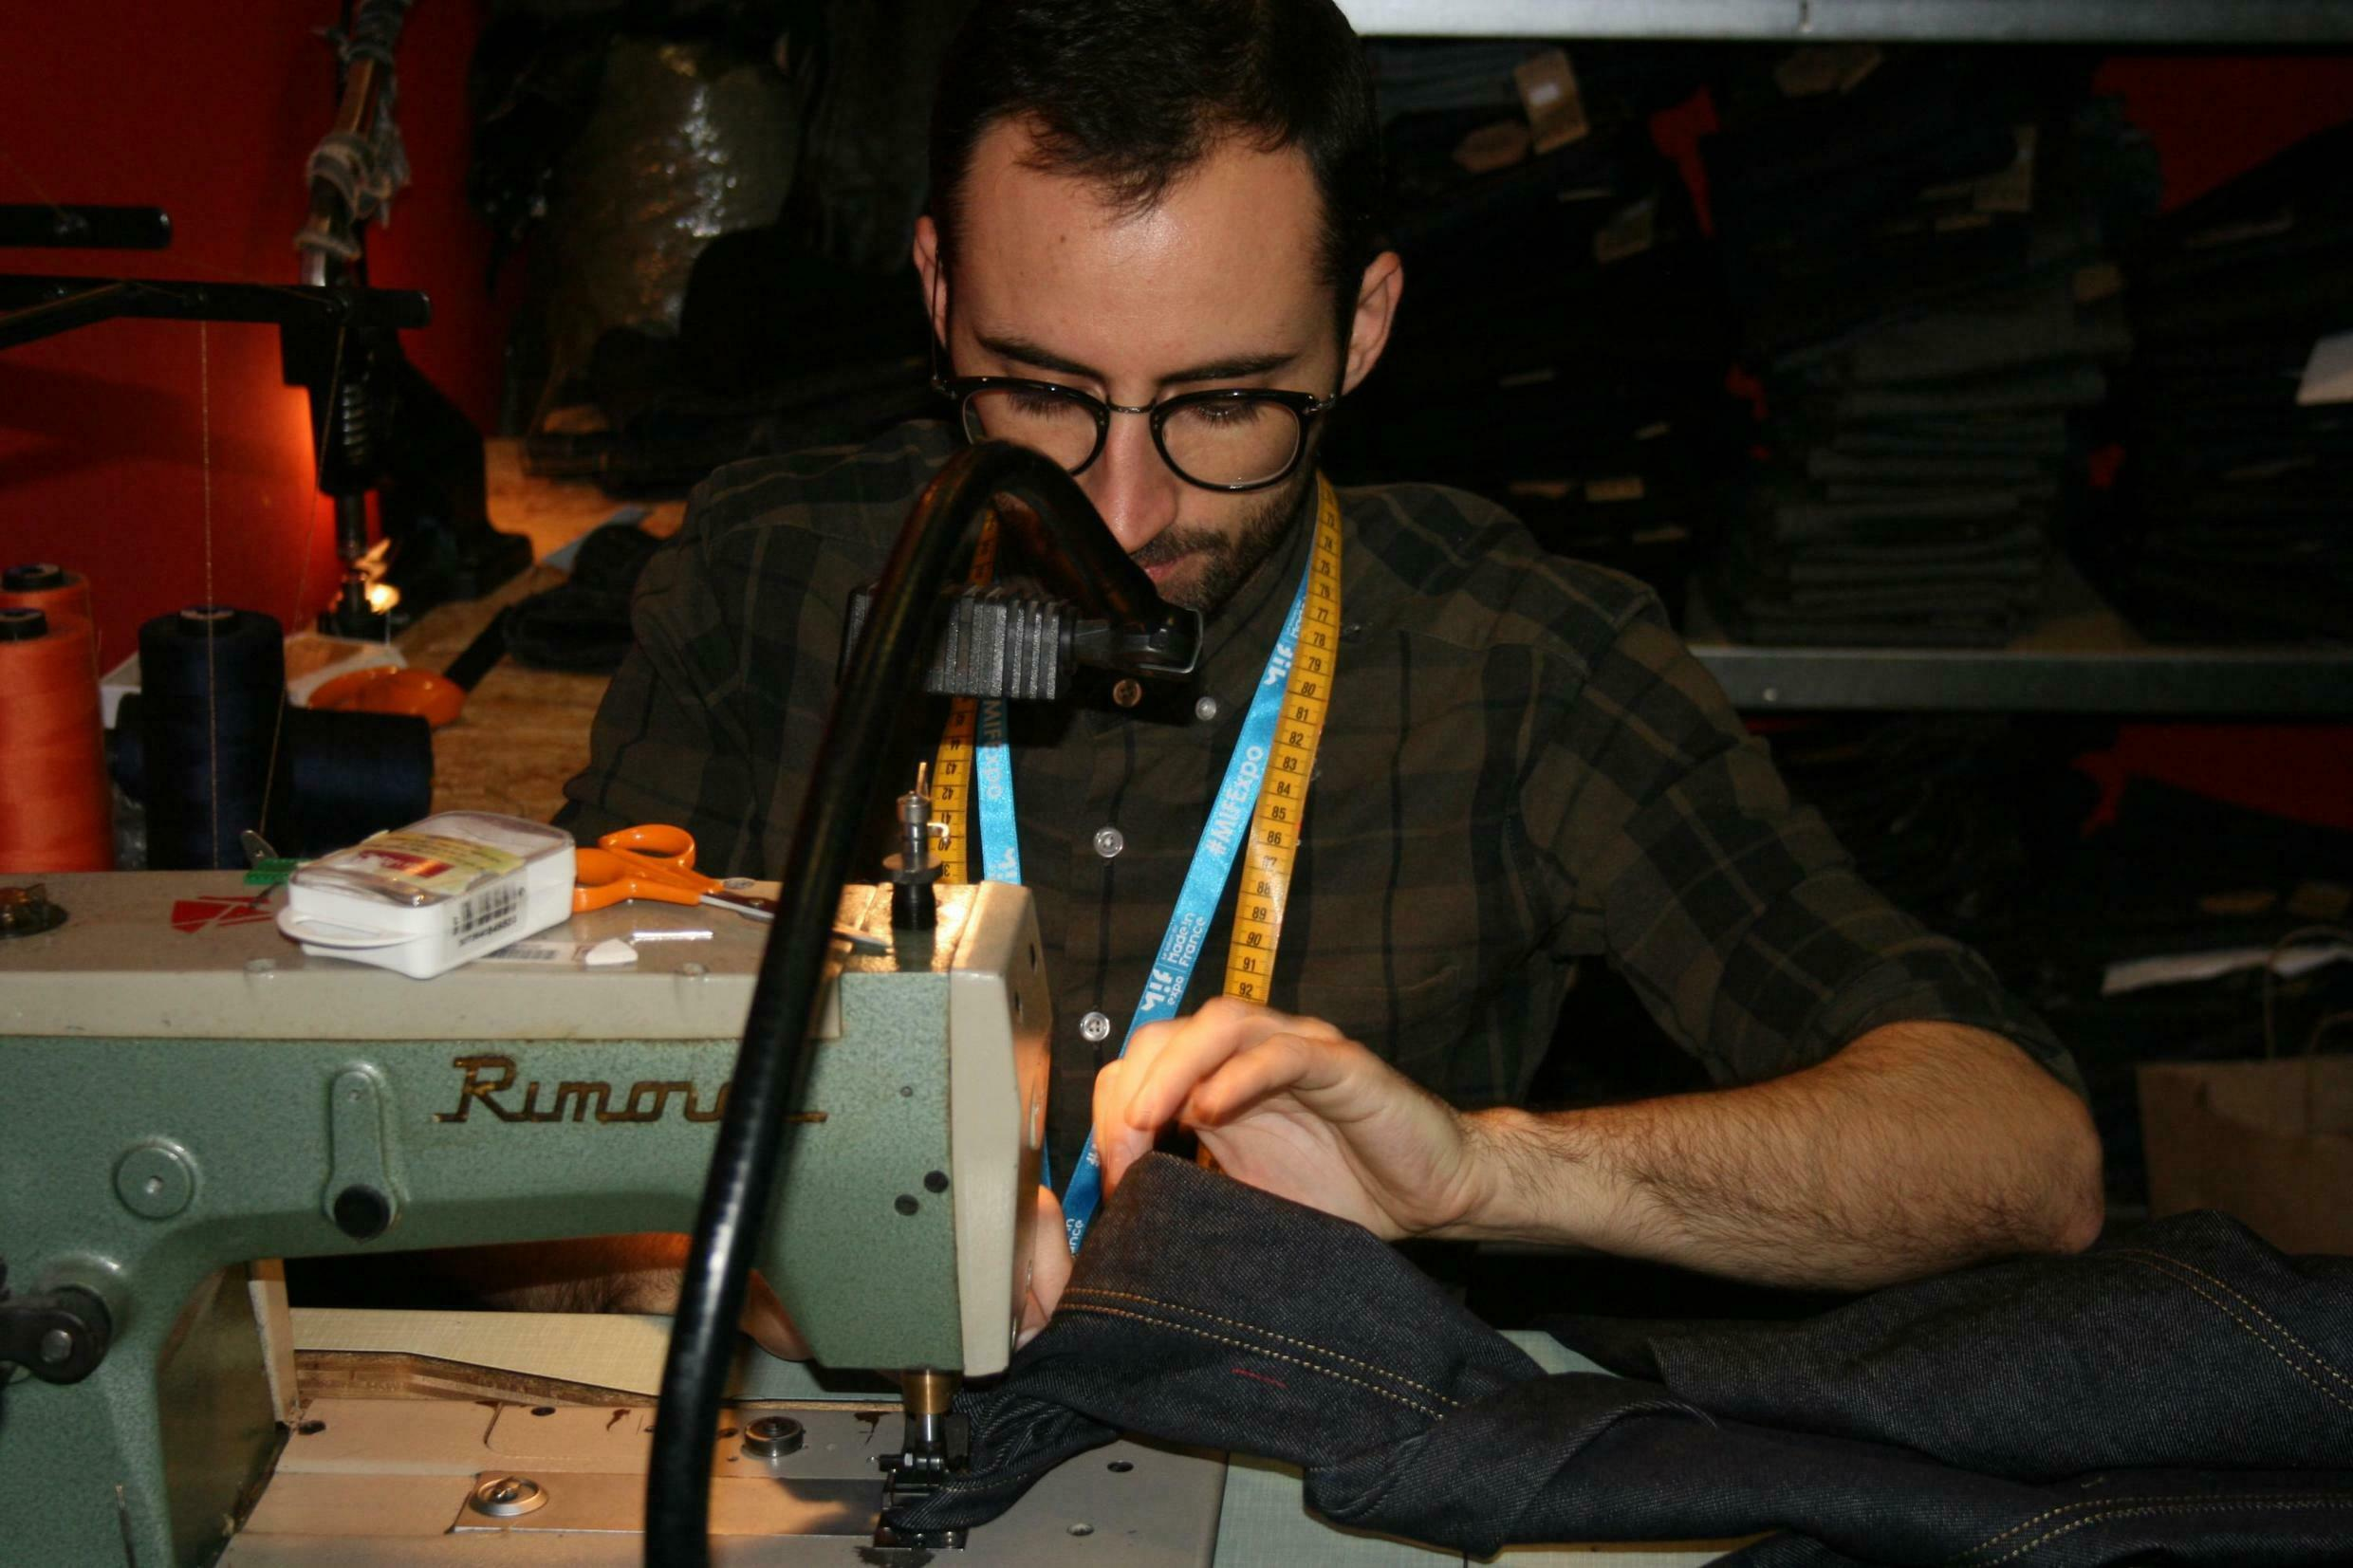 """A dressmaker from the Davy Dao jean factory in Nancy produces a bespoke jean for a customer at the """"Made in France"""" fair at Porte de Versailles in Paris, 10 November 2019"""